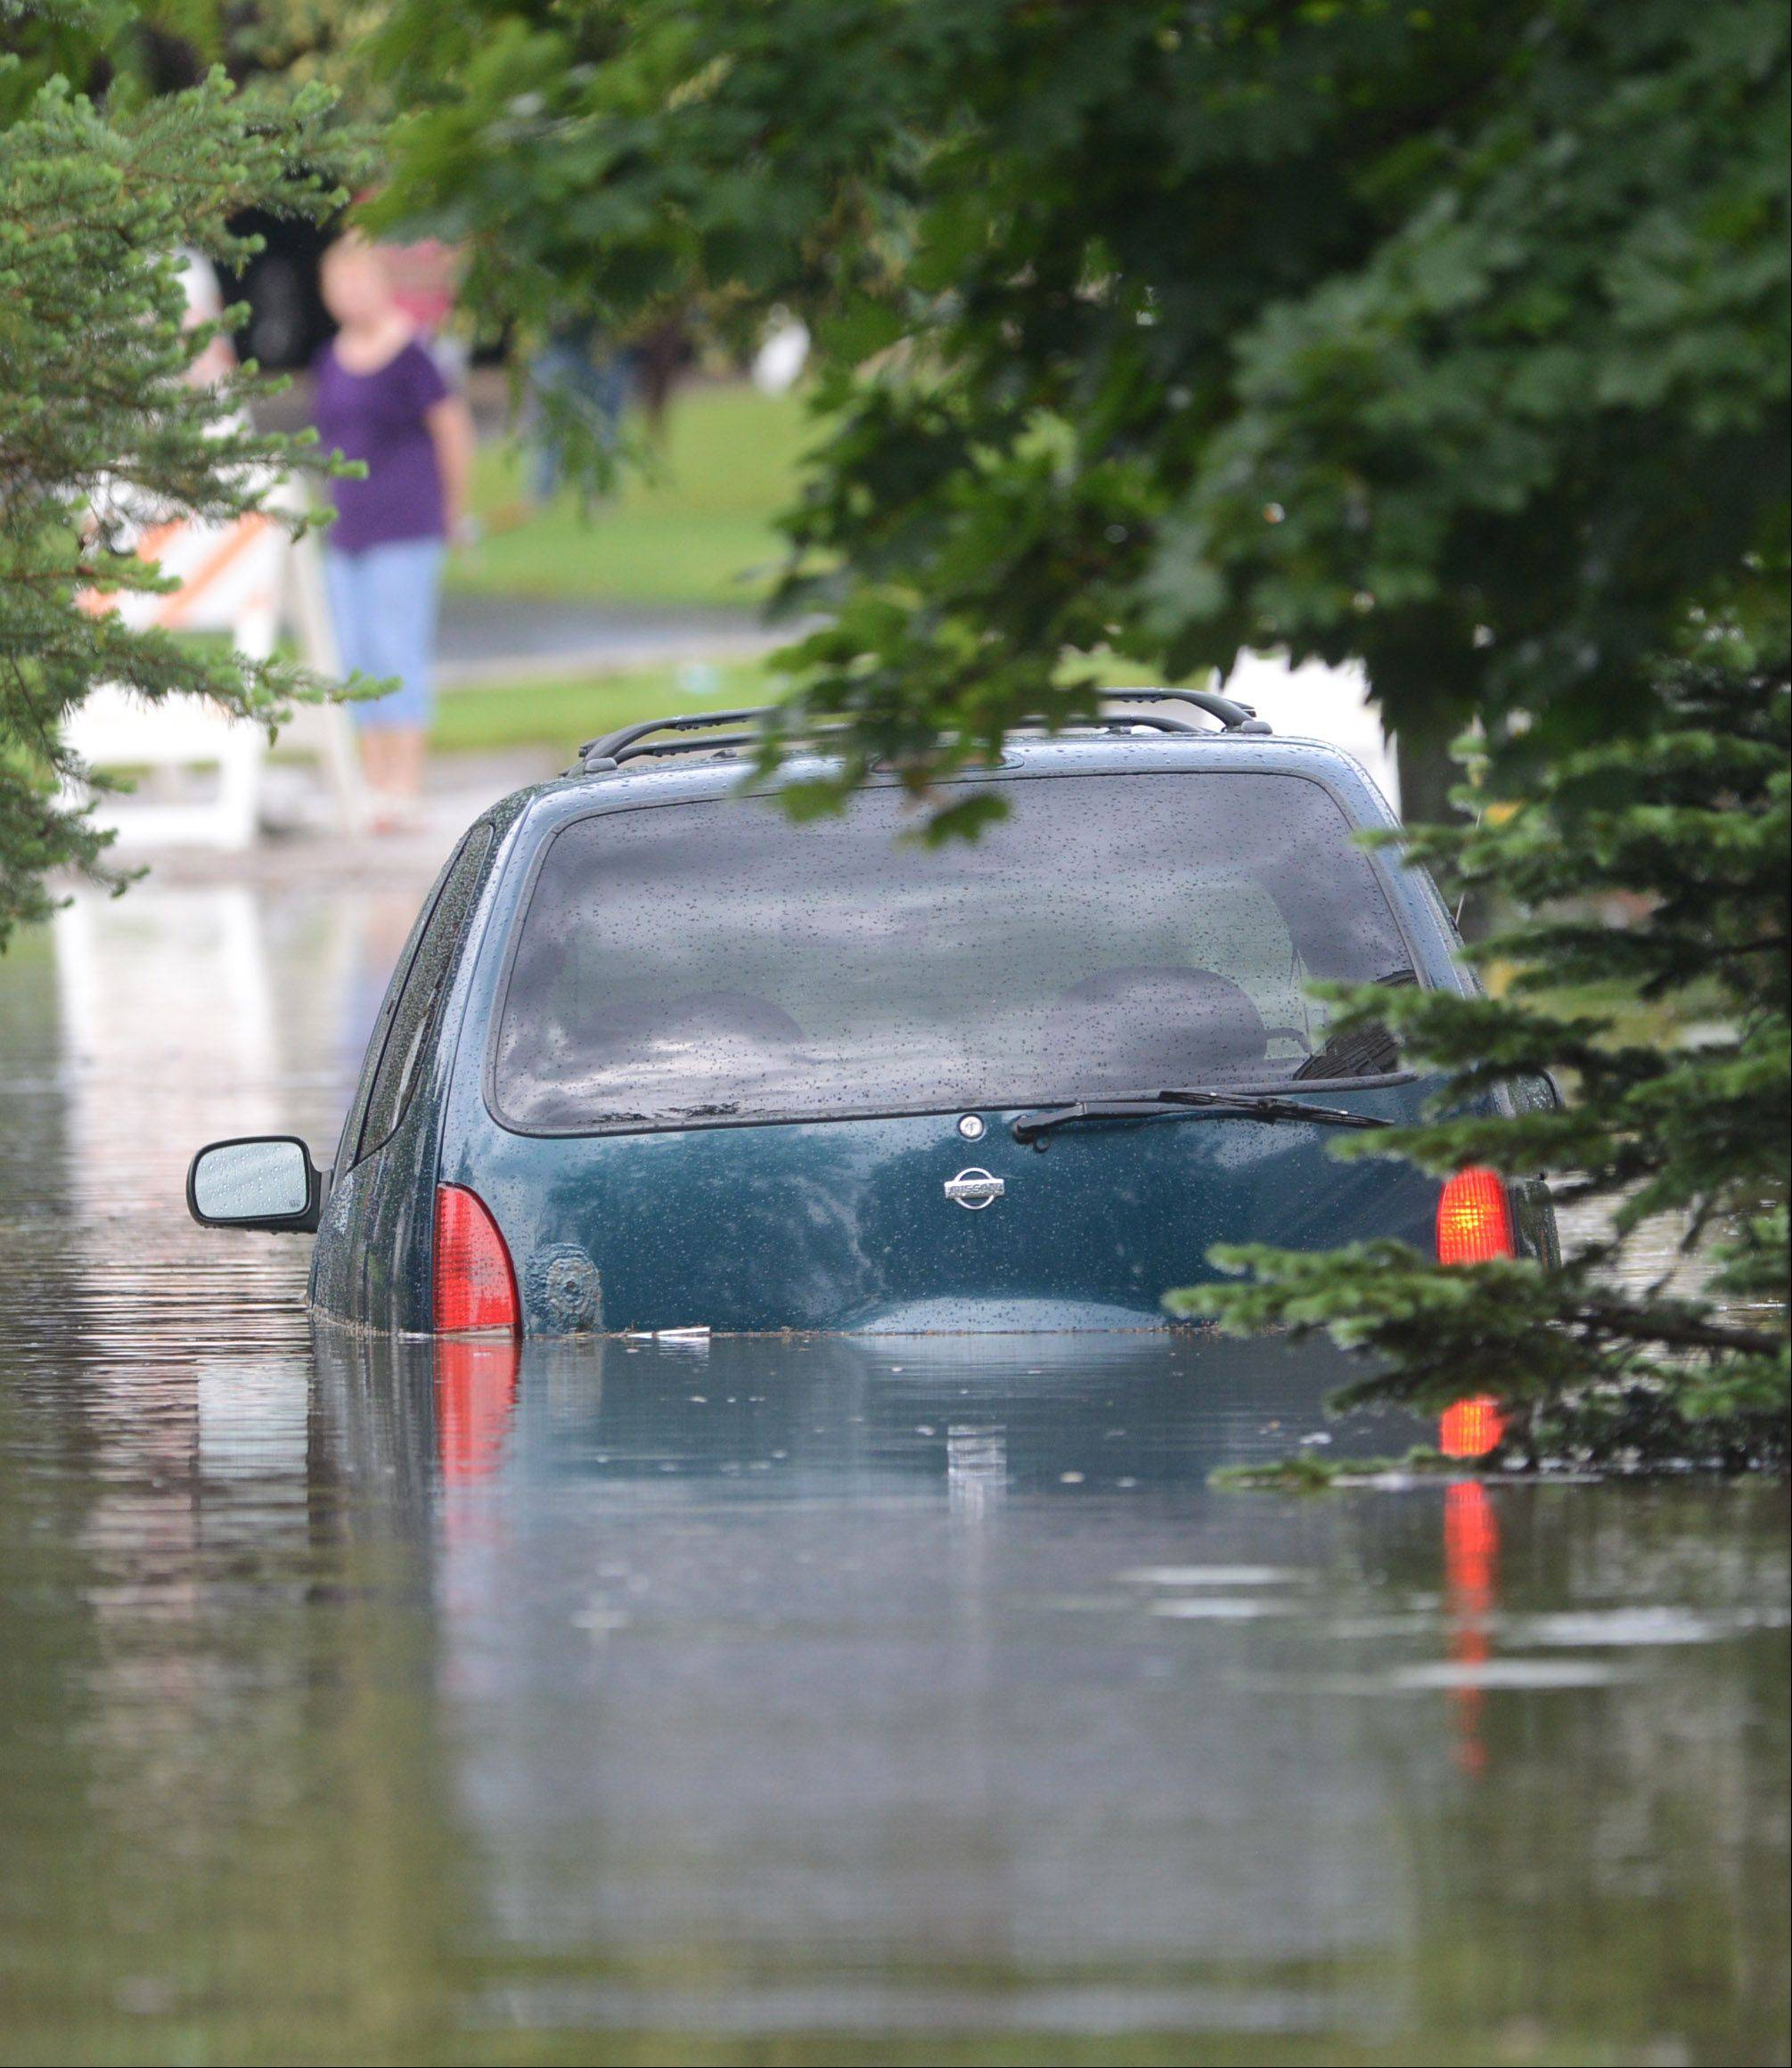 Paul Valade/pvalade@dailyherald.comA vehicle is half under water along Bristol Trail Drive in Lake Zurich Wednesday following heavy rains.